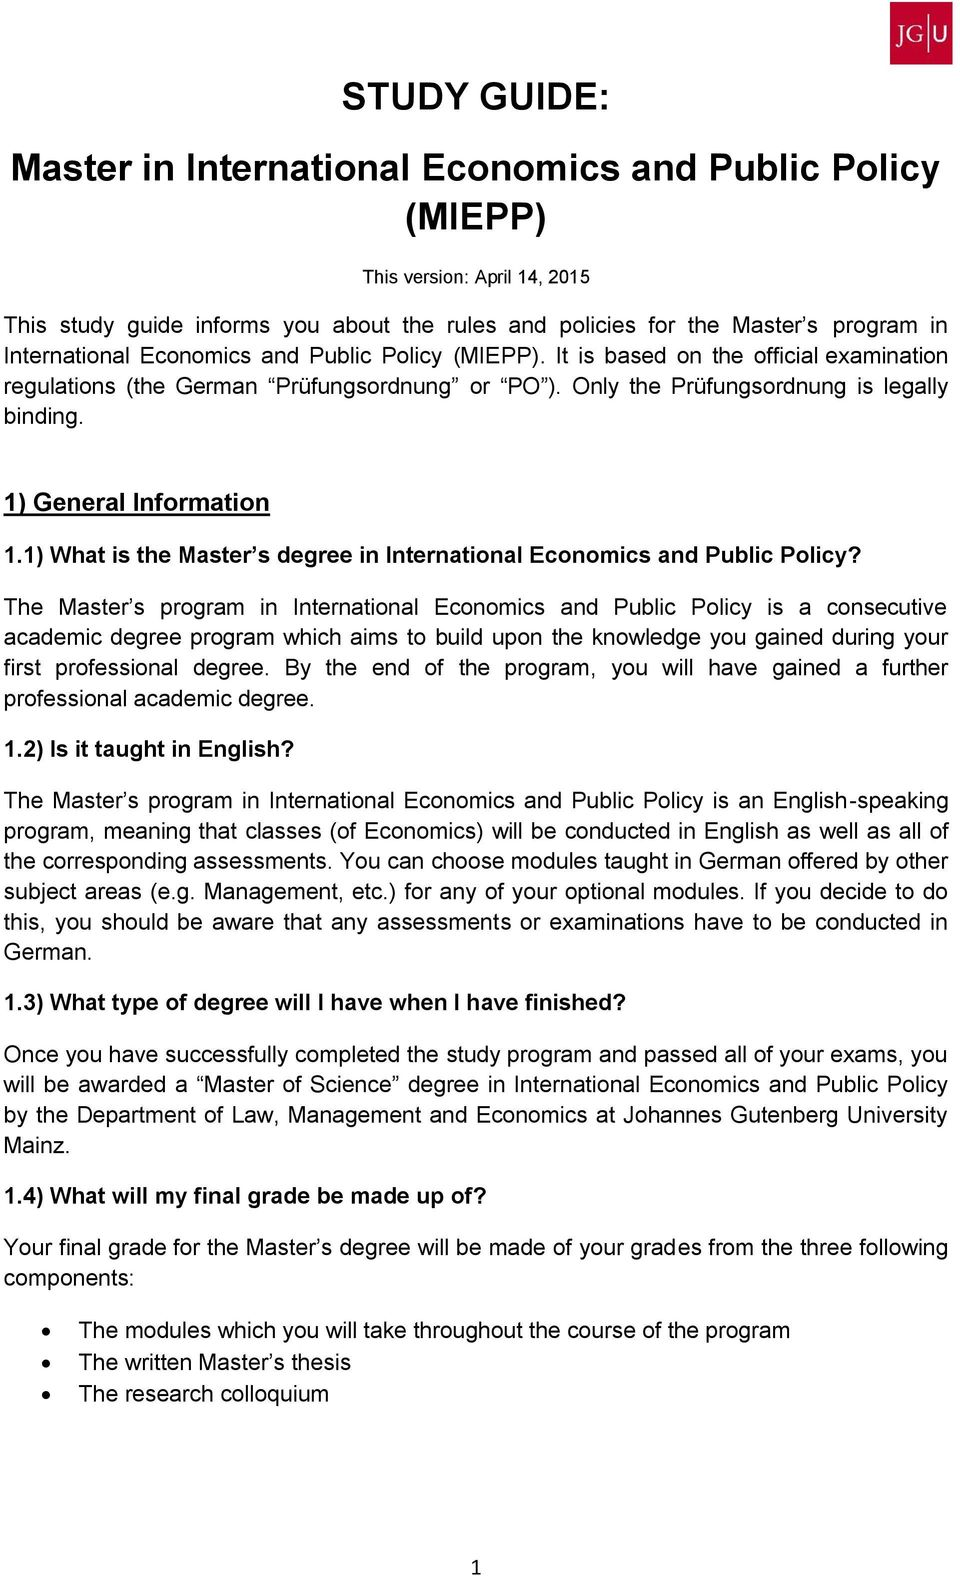 1) General Information 1.1) What is the Master s degree in International Economics and Public Policy?